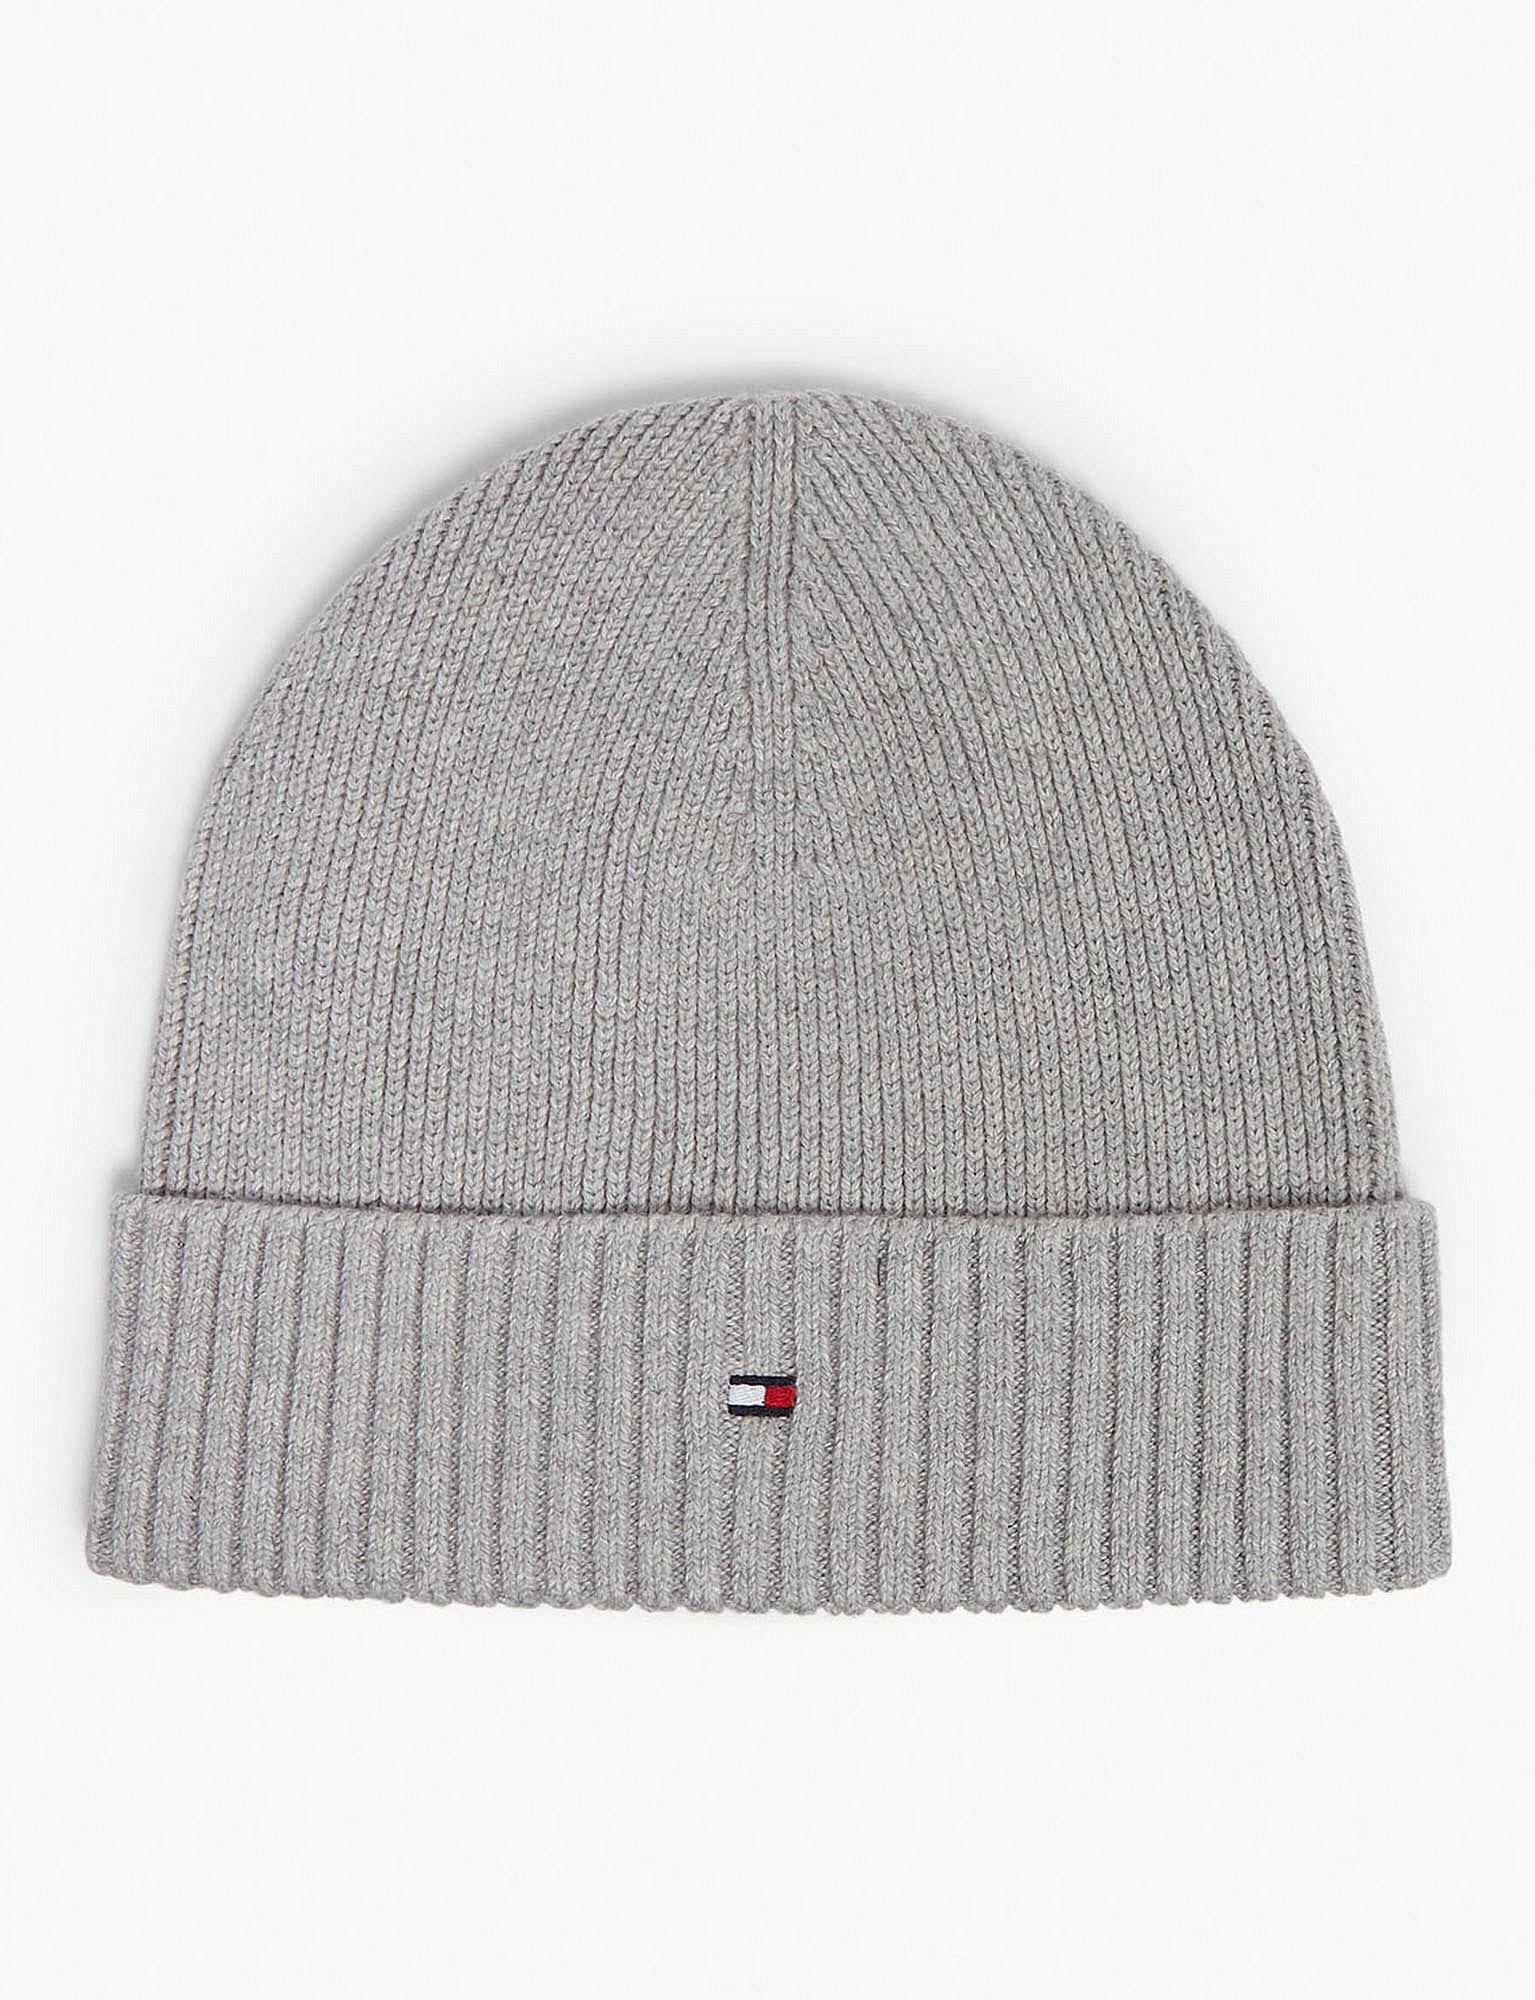 609ca843 Tommy Hilfiger Pima Cotton And Cashmere Beanie in Gray for Men - Lyst